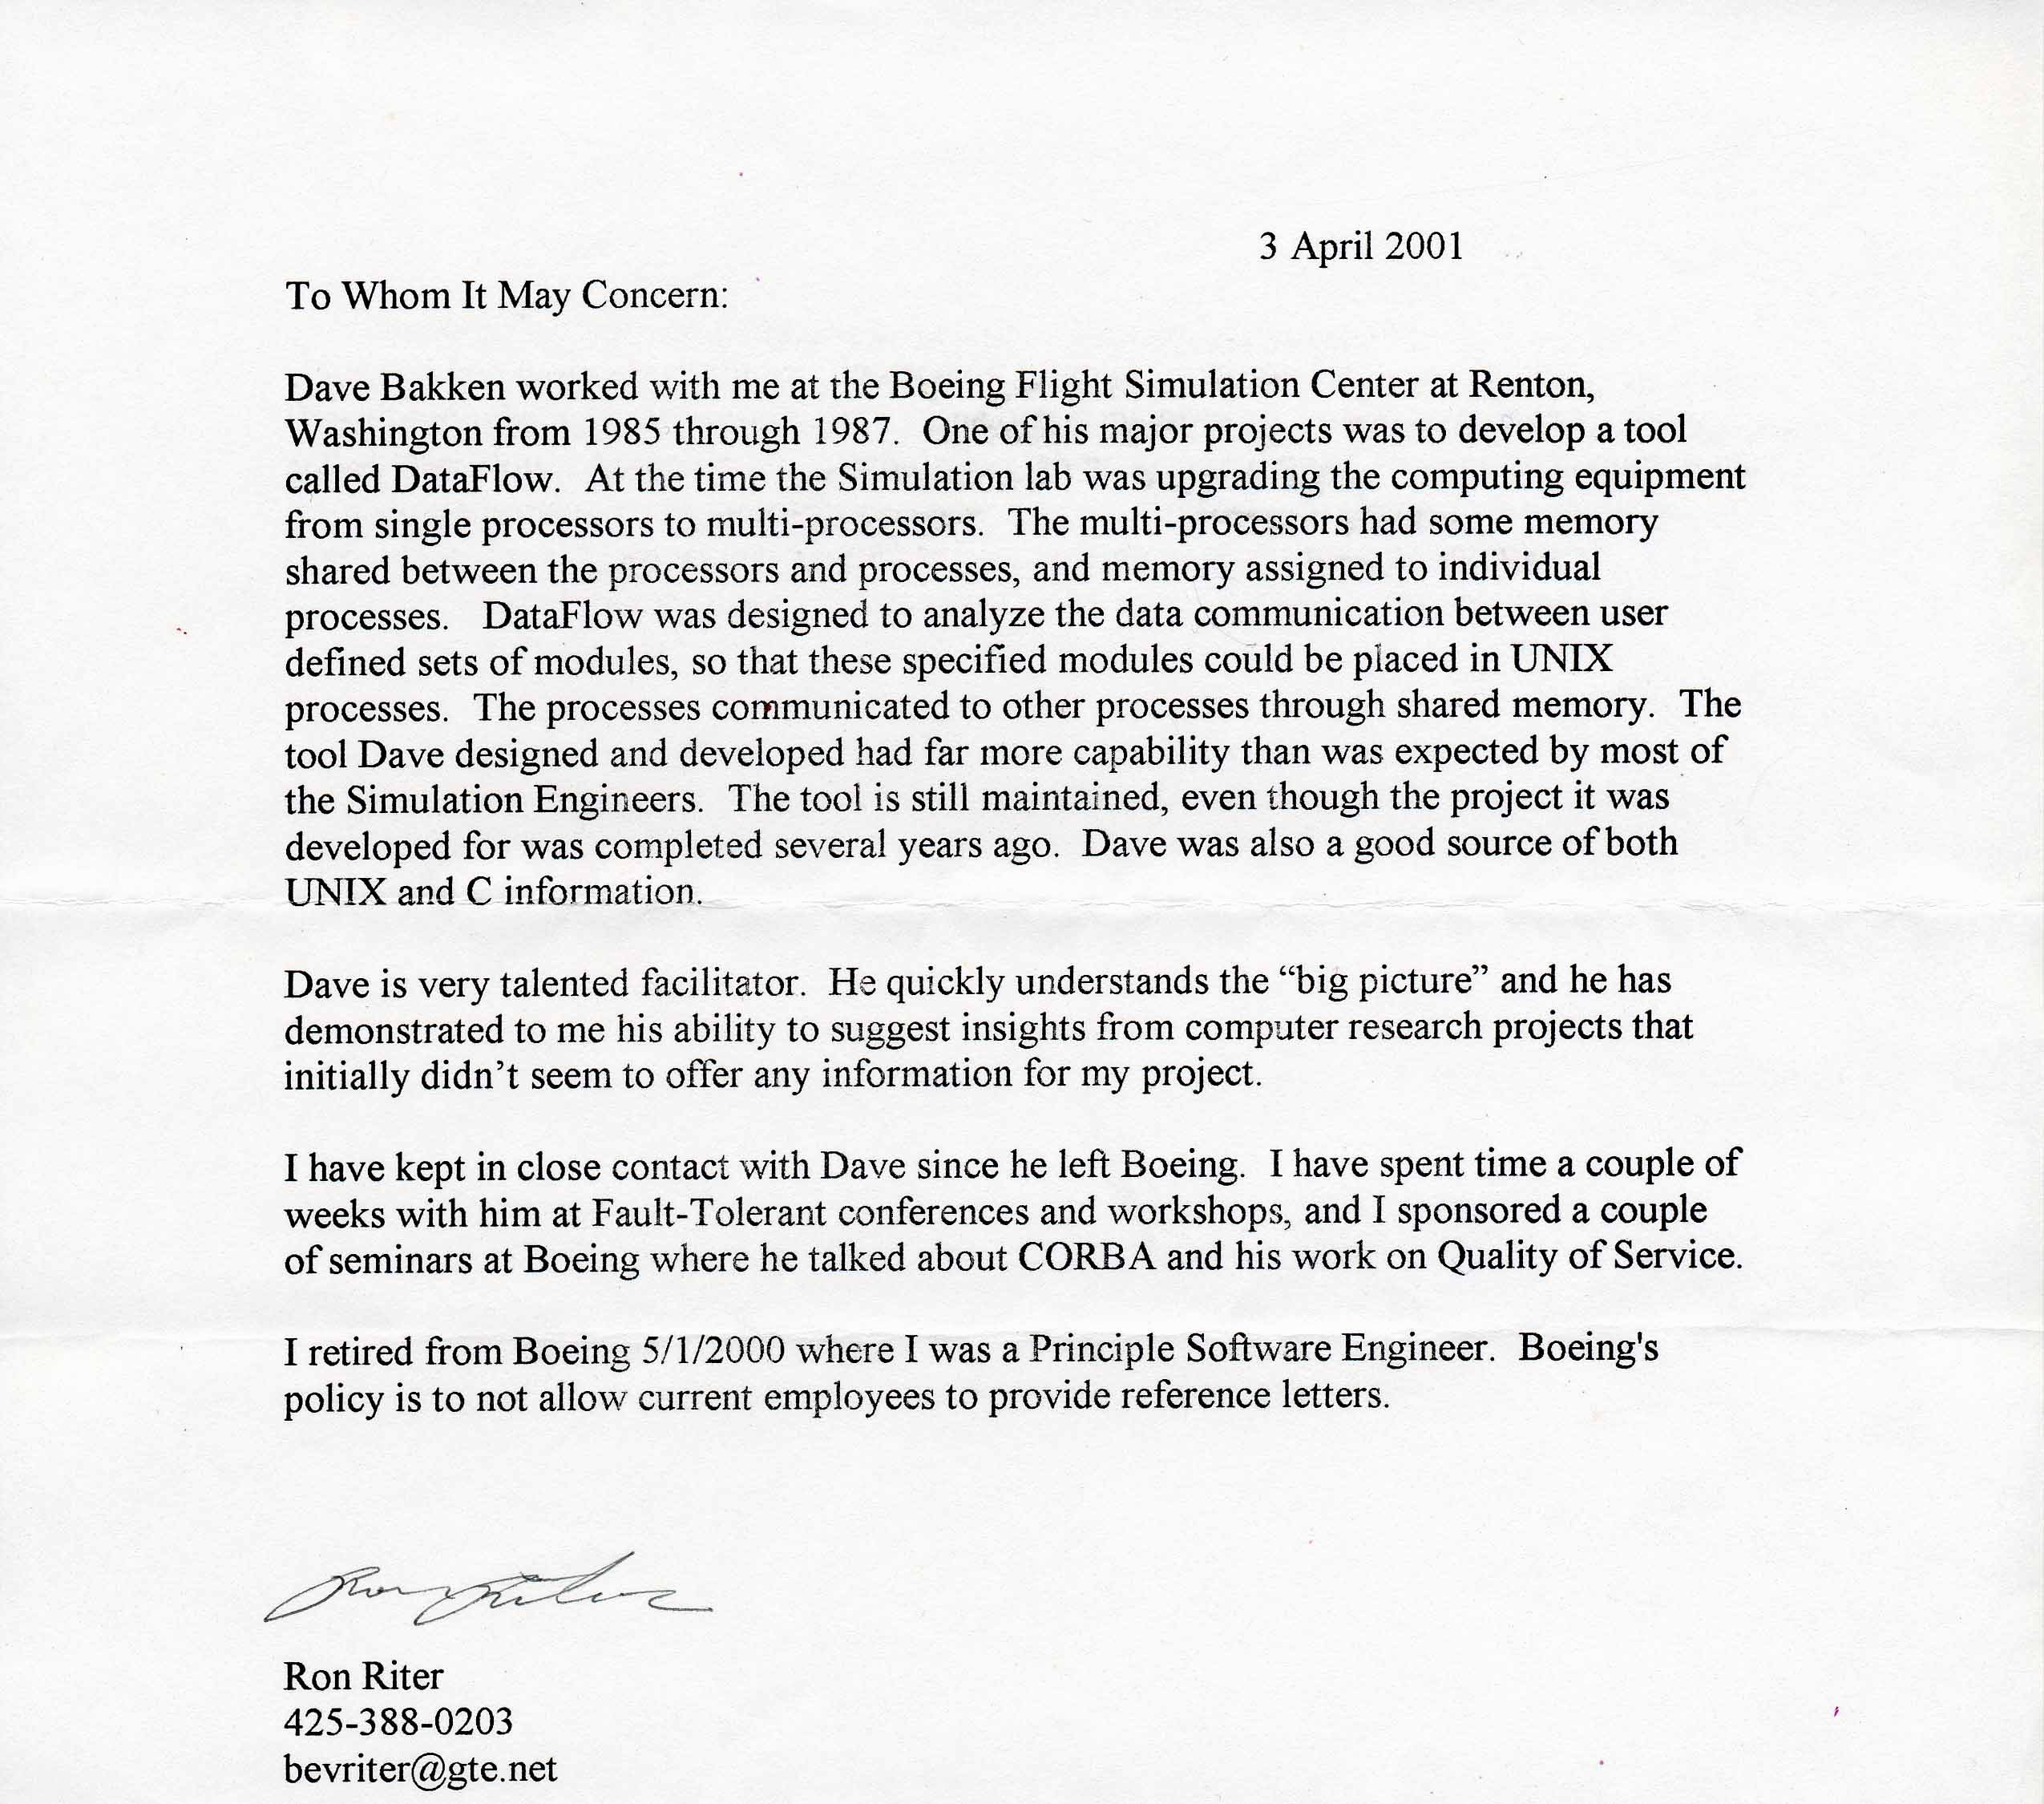 West Point Letter Of Recommendation Fresh West Point Letters Reverse Search